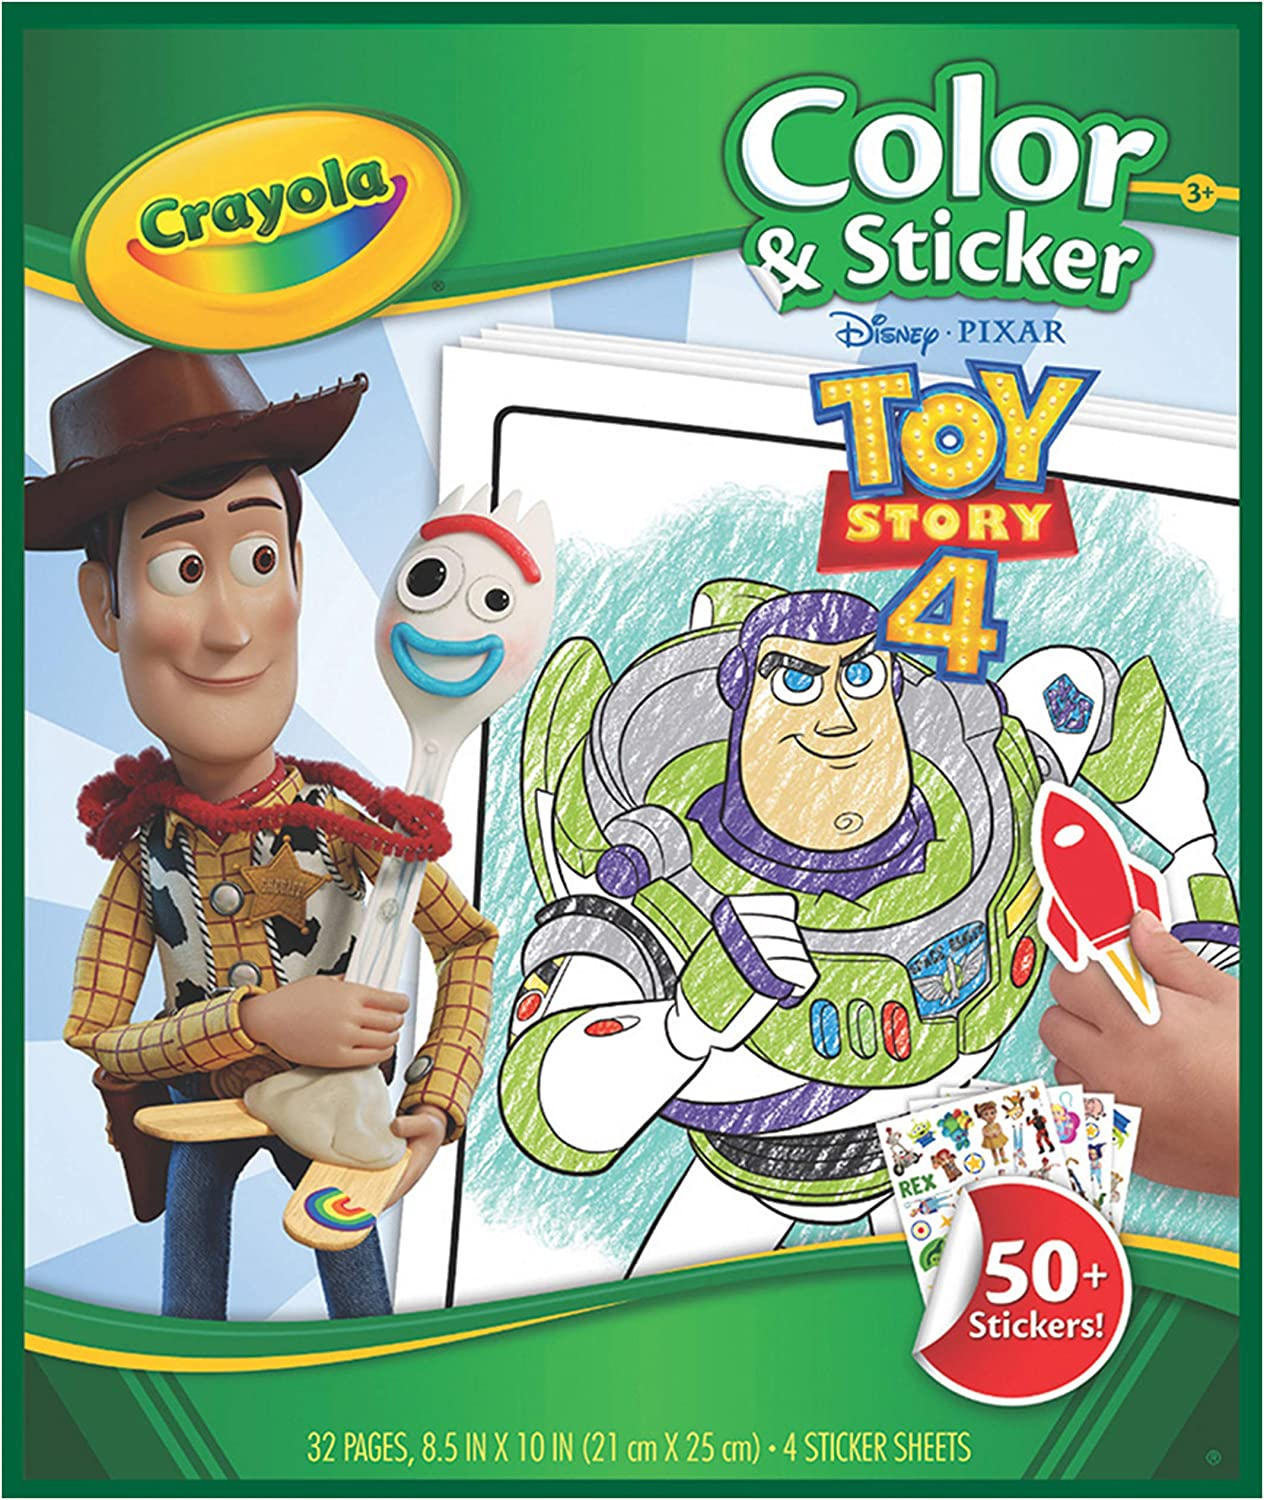 Amazon Com Crayola Toy Story 4 Coloring Pages Stickers Kids At Home Activities Gift For Kids Age 3 4 5 6 7 Toys Games